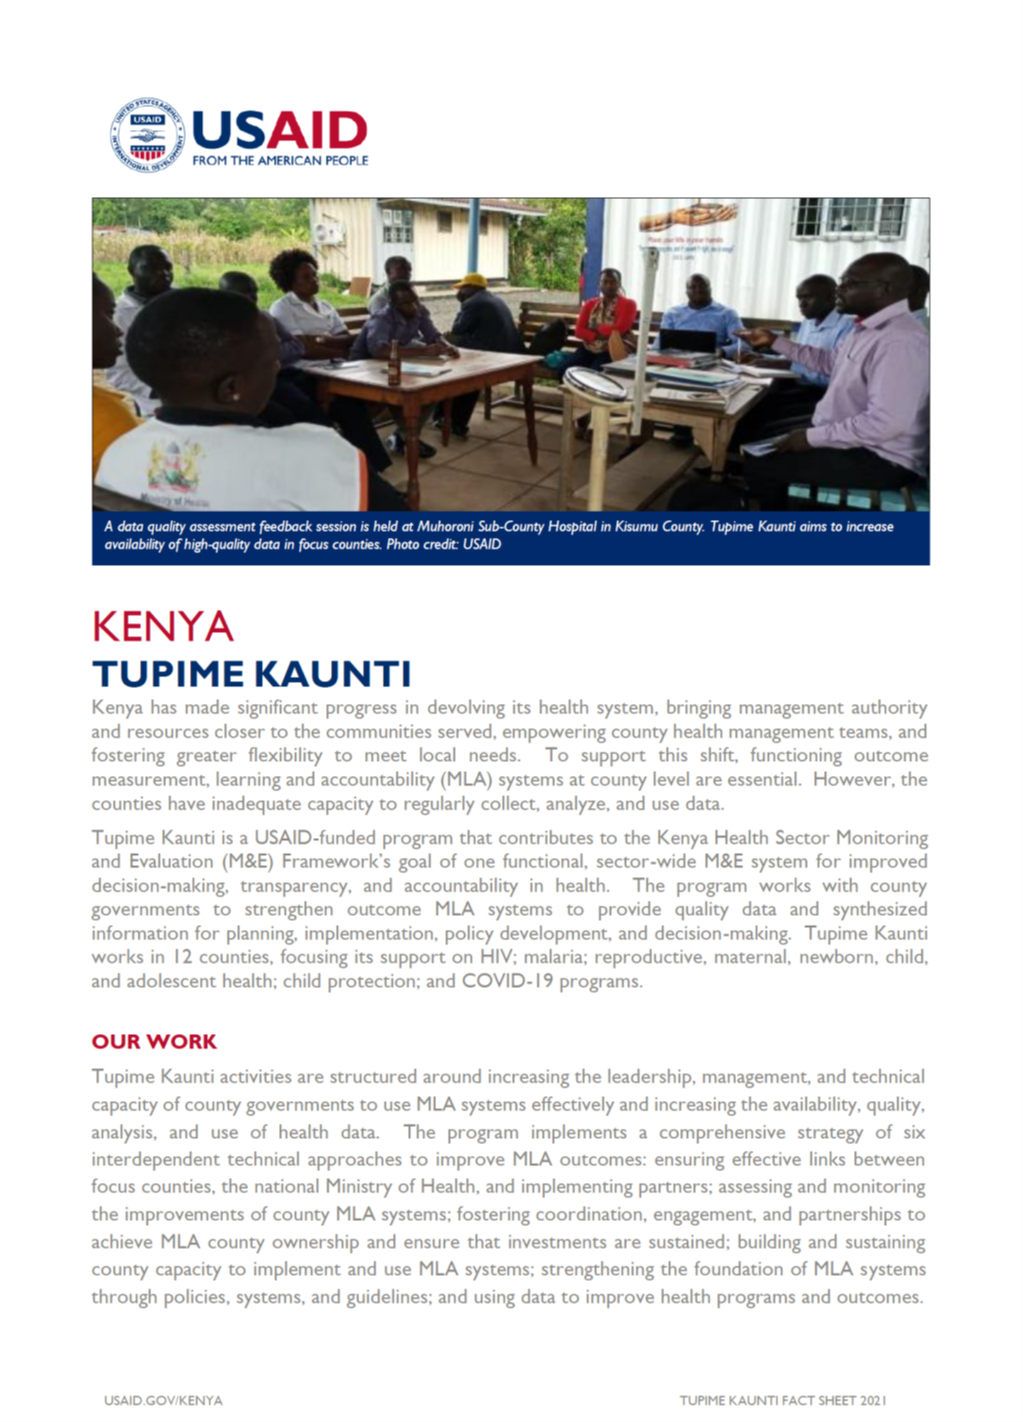 Tupime Kaunti fact sheet